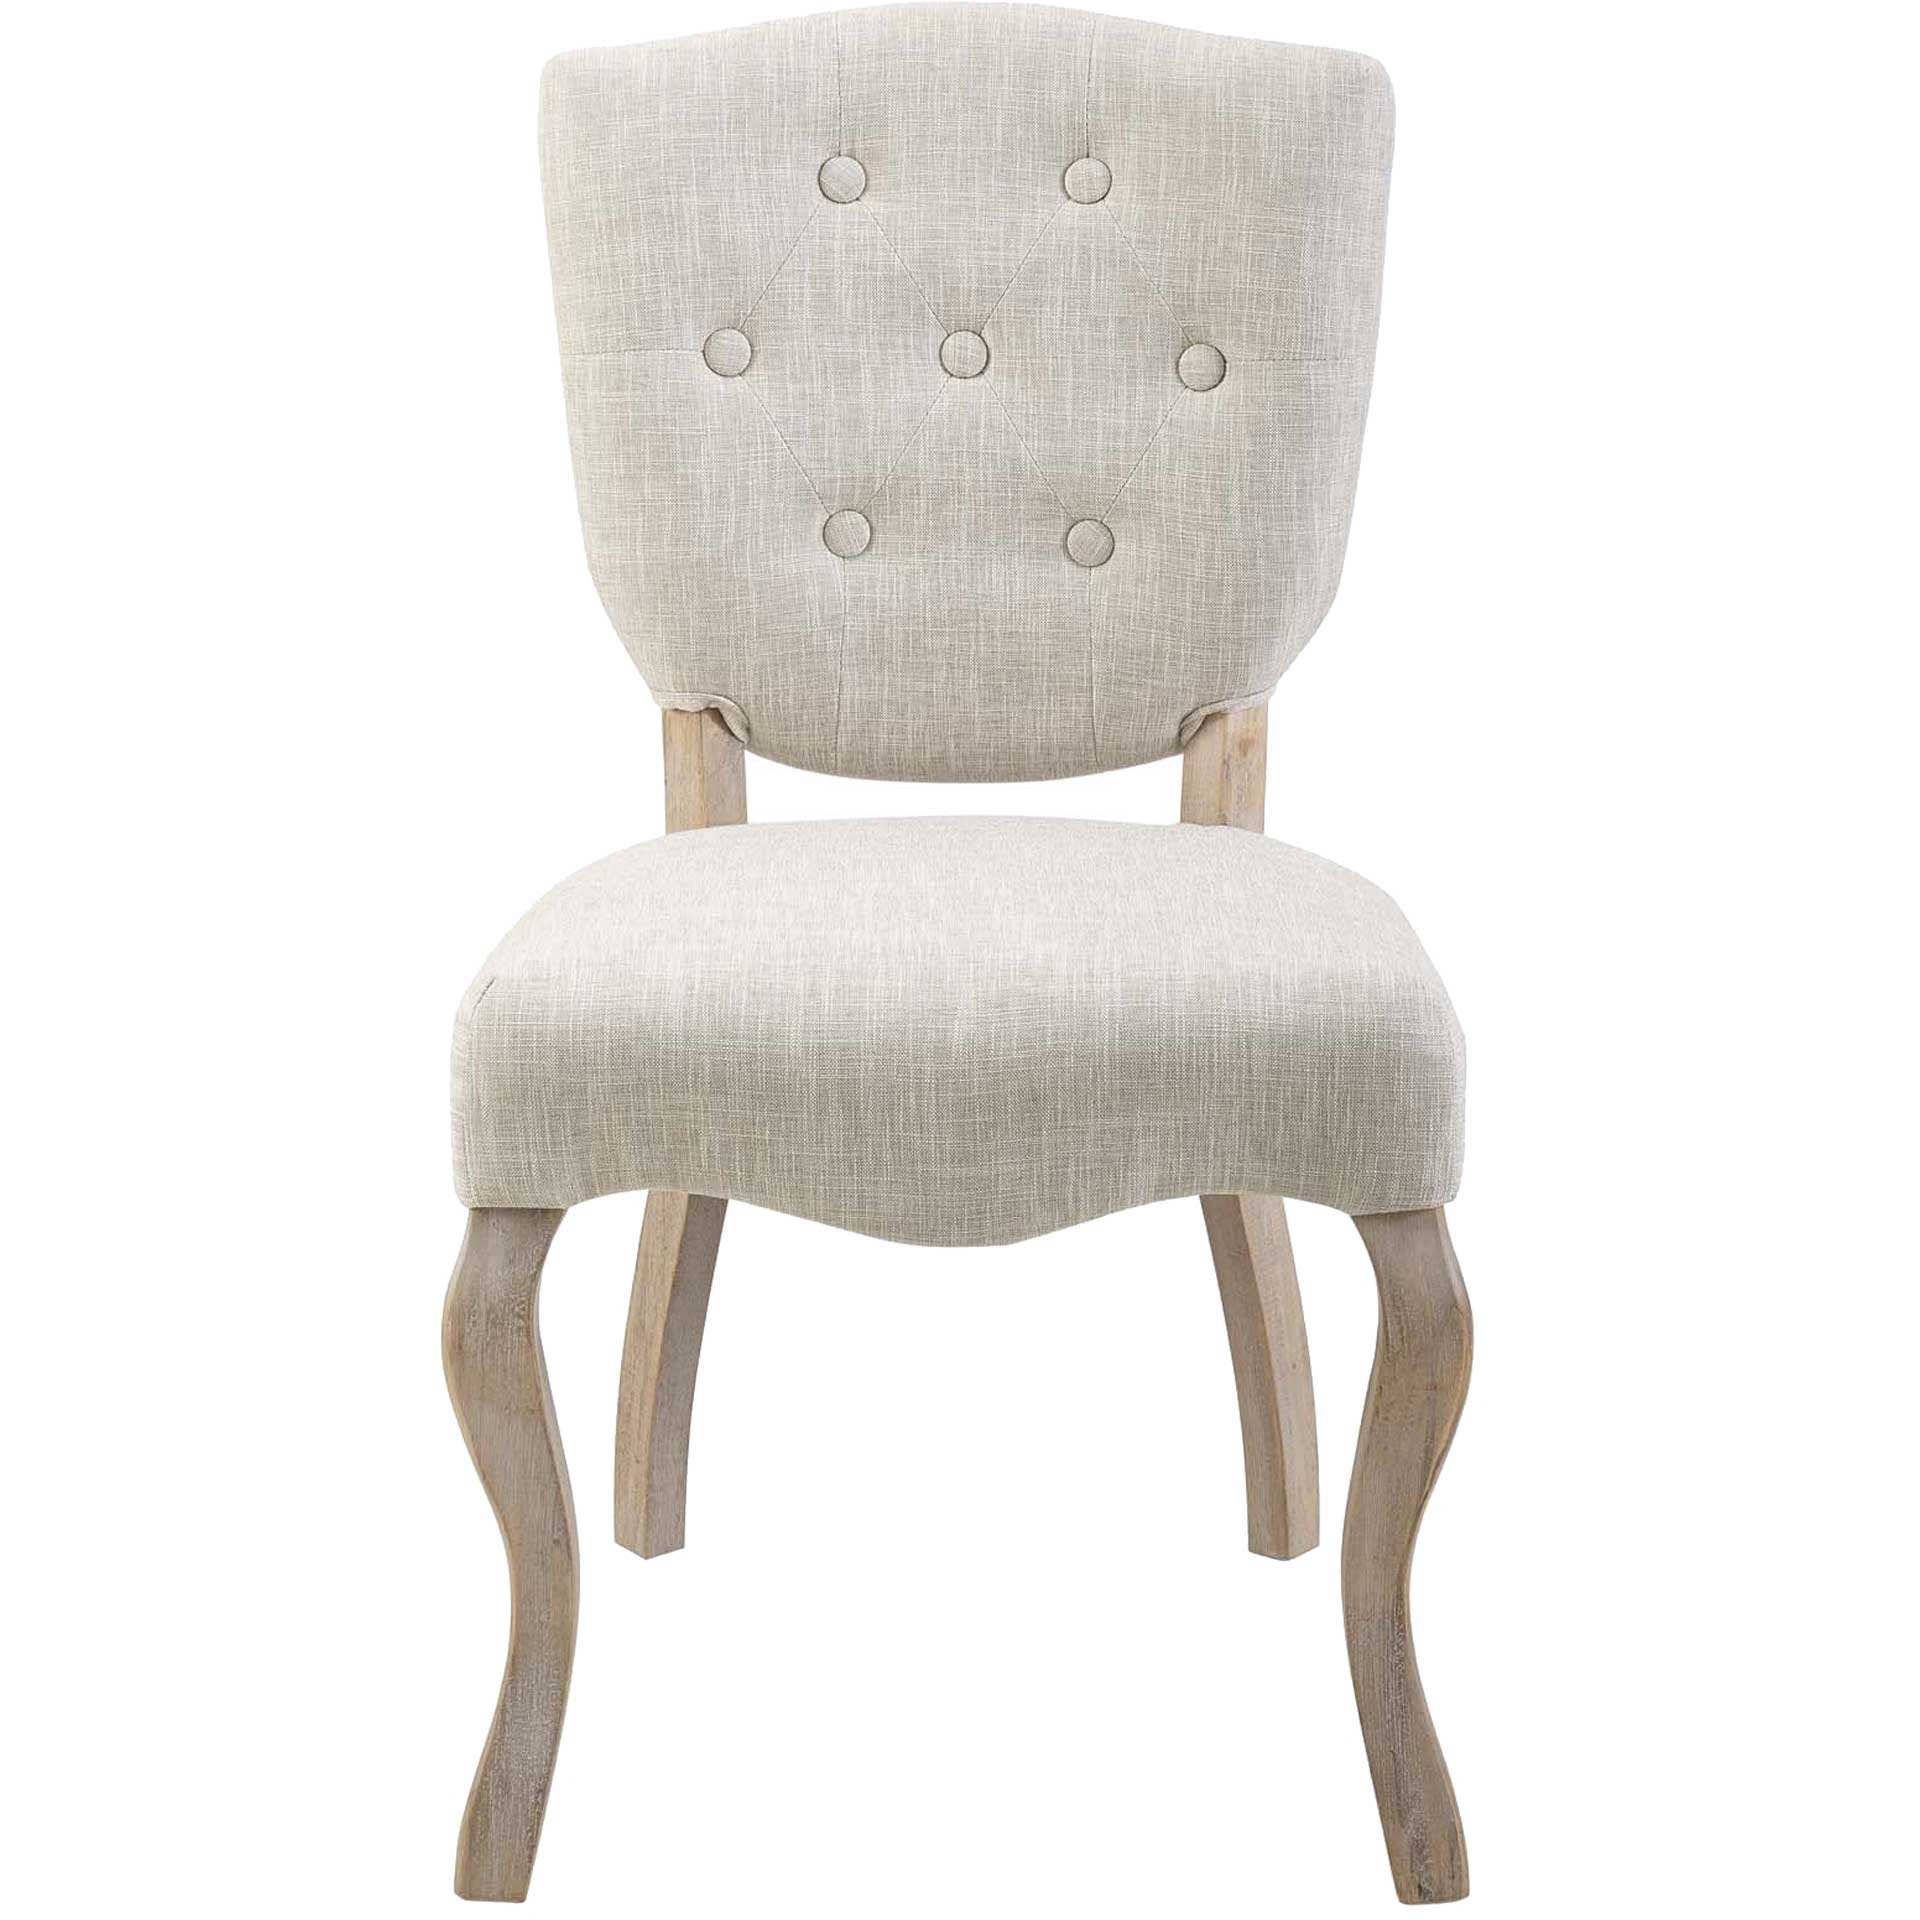 Angie Upholstered Dining Side Chair Beige